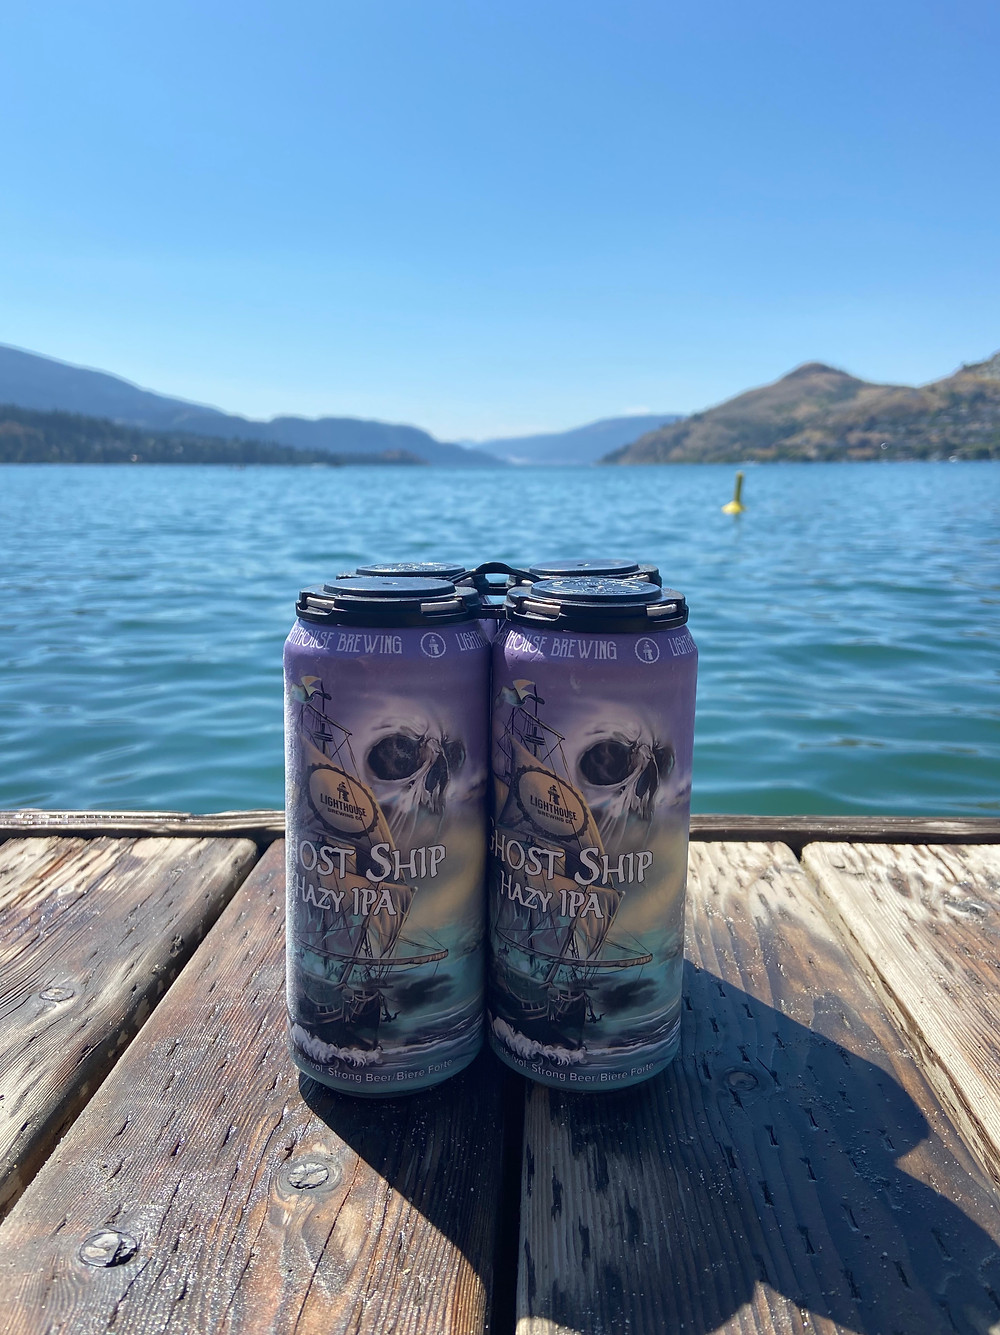 Lighthouse Brewing Ghost Ship Hazy IPA Image